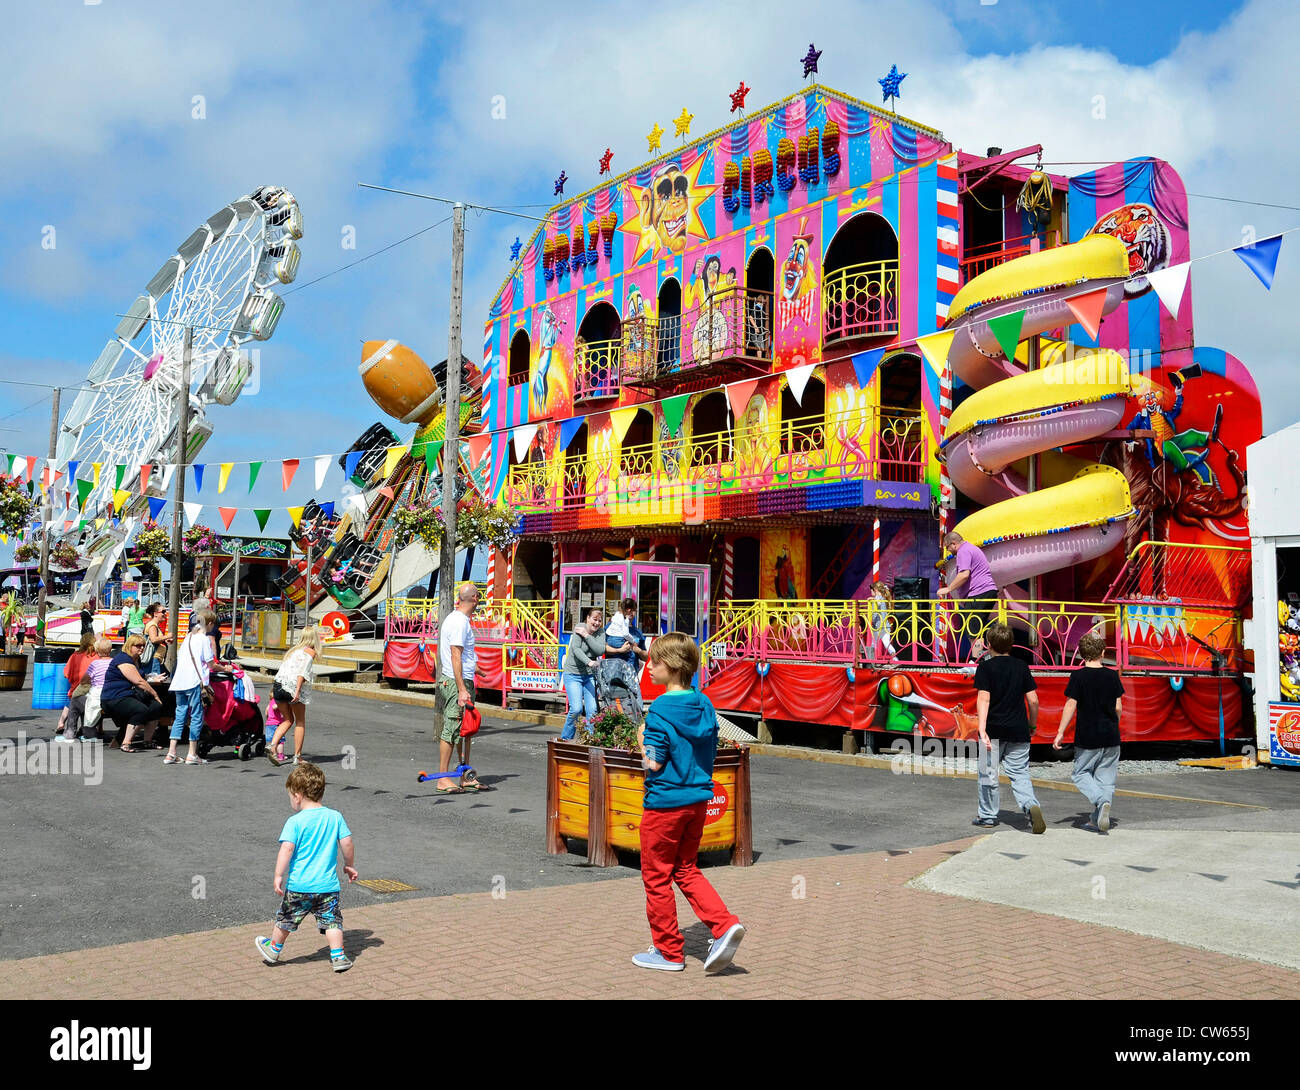 A Sunny Day At Pleasureland Fairground In Southport